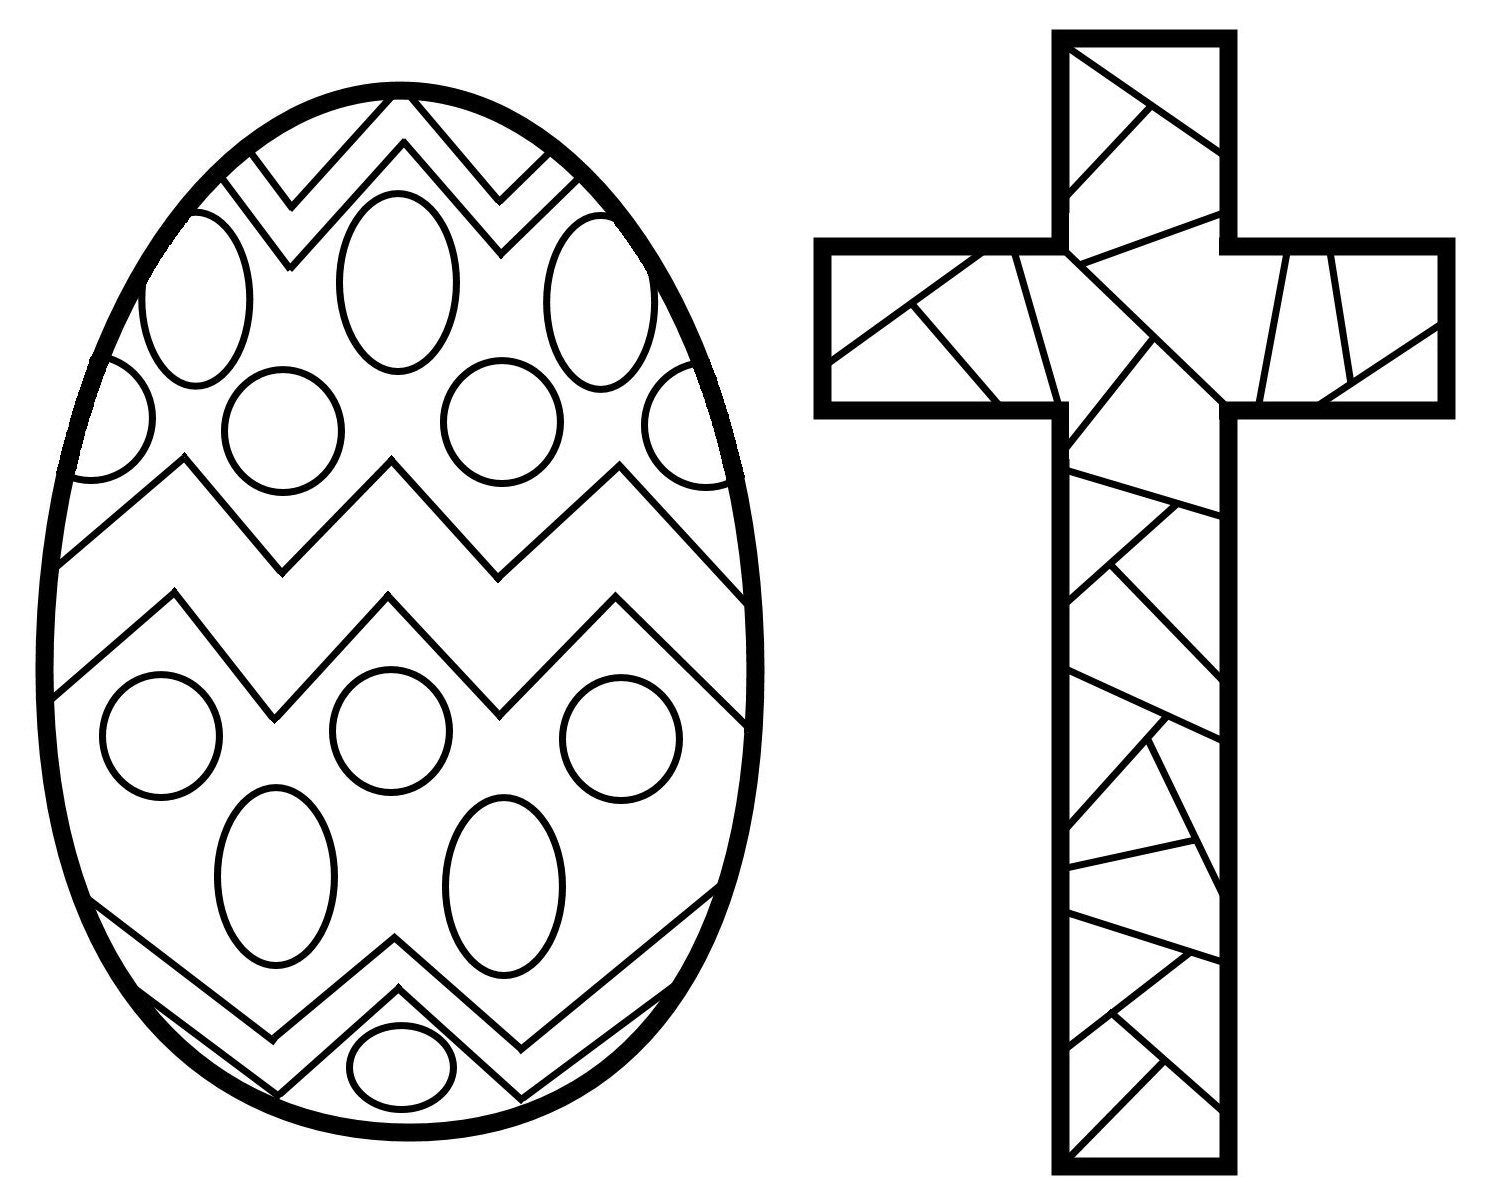 Easter Cross Coloring Pages Printable for Fancy Draw Print to Print Of Easter Coloring Pages for Kids Crazy Little Projects Printable